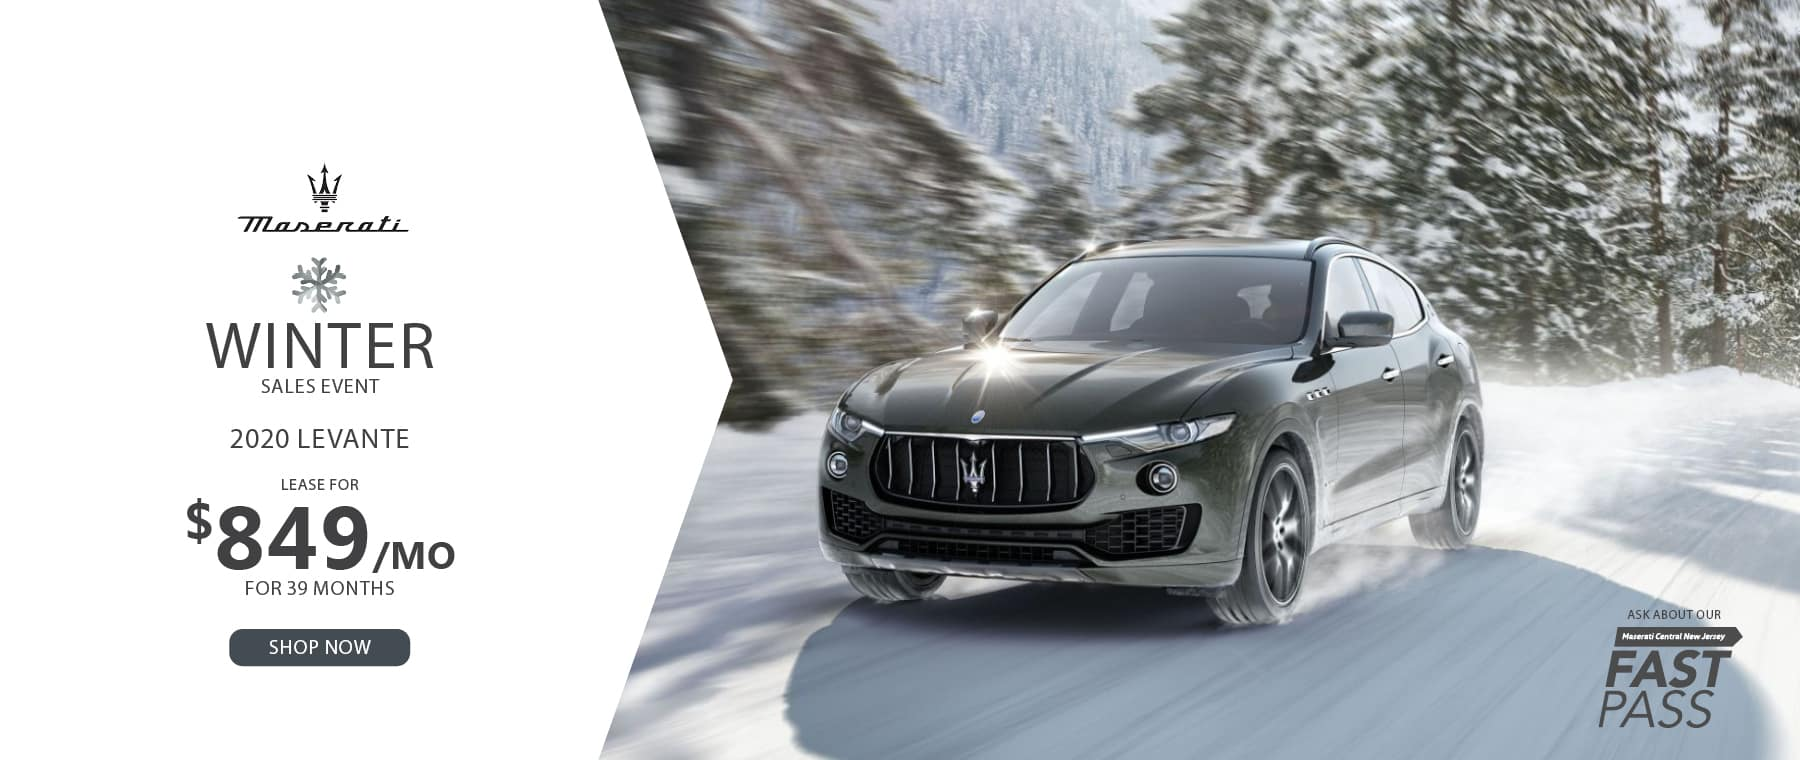 Silver Maserati Levante driving in snow